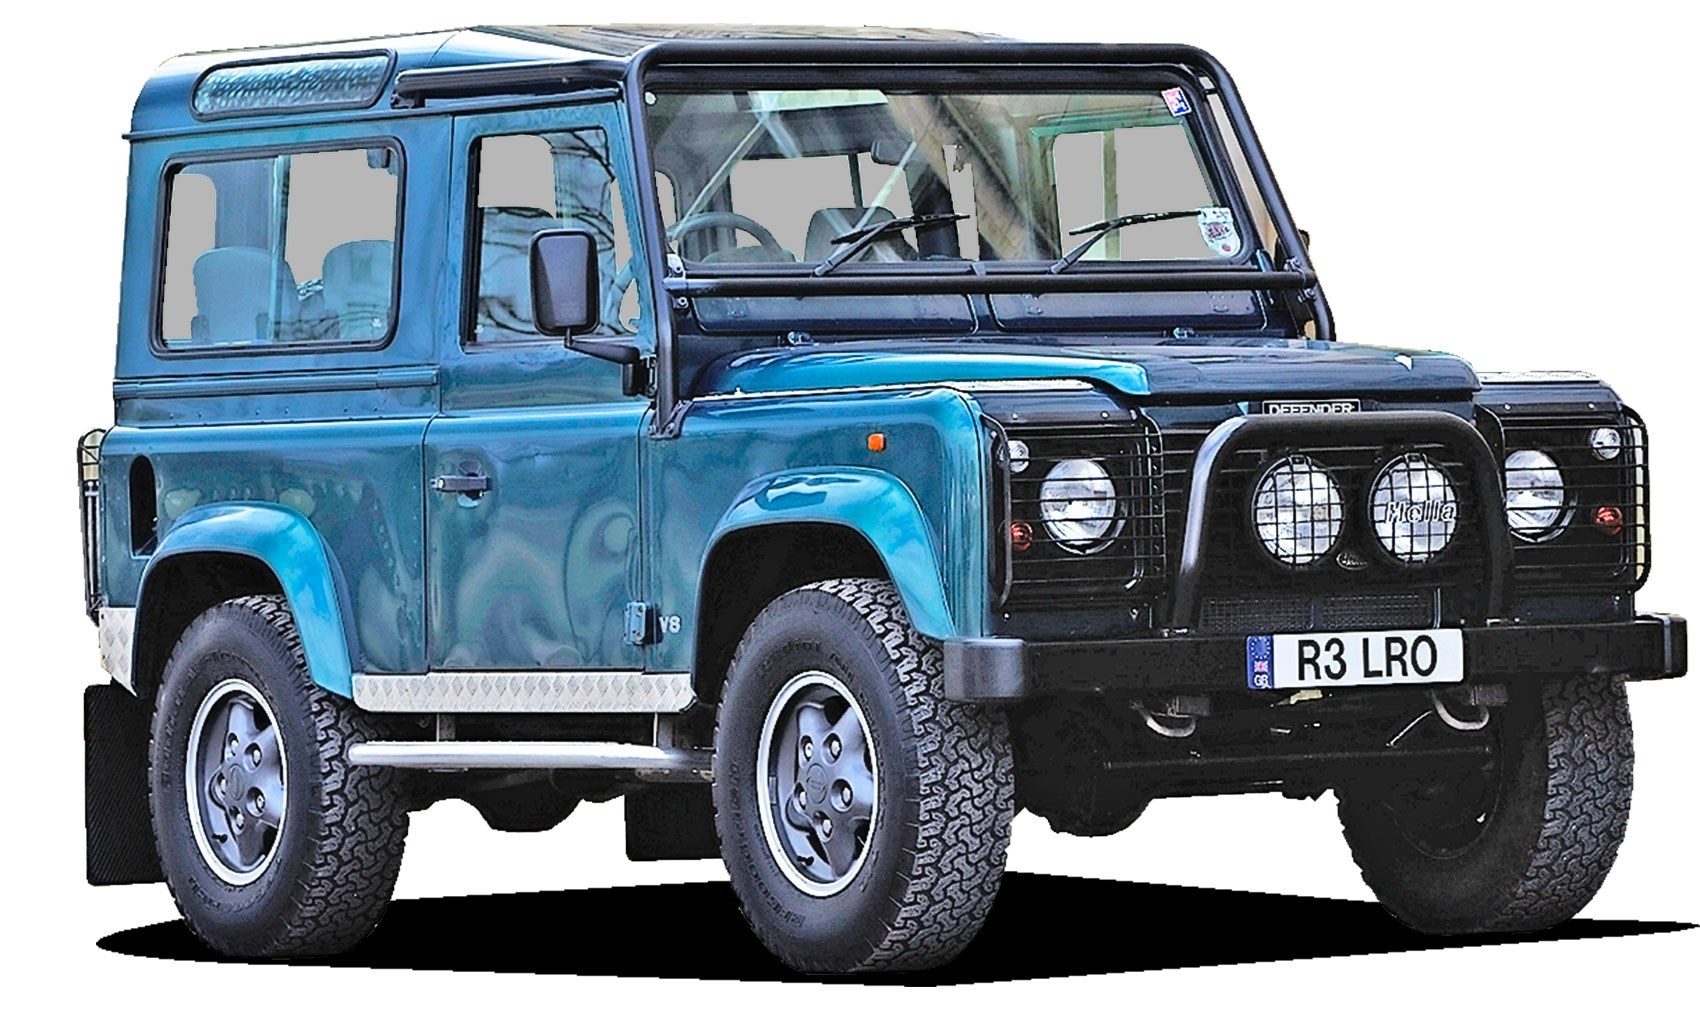 in series off blog hemmings land online landrover lr the heritage wagon of classic part parts roading a driving experience rover iii daily s its it all o st brands